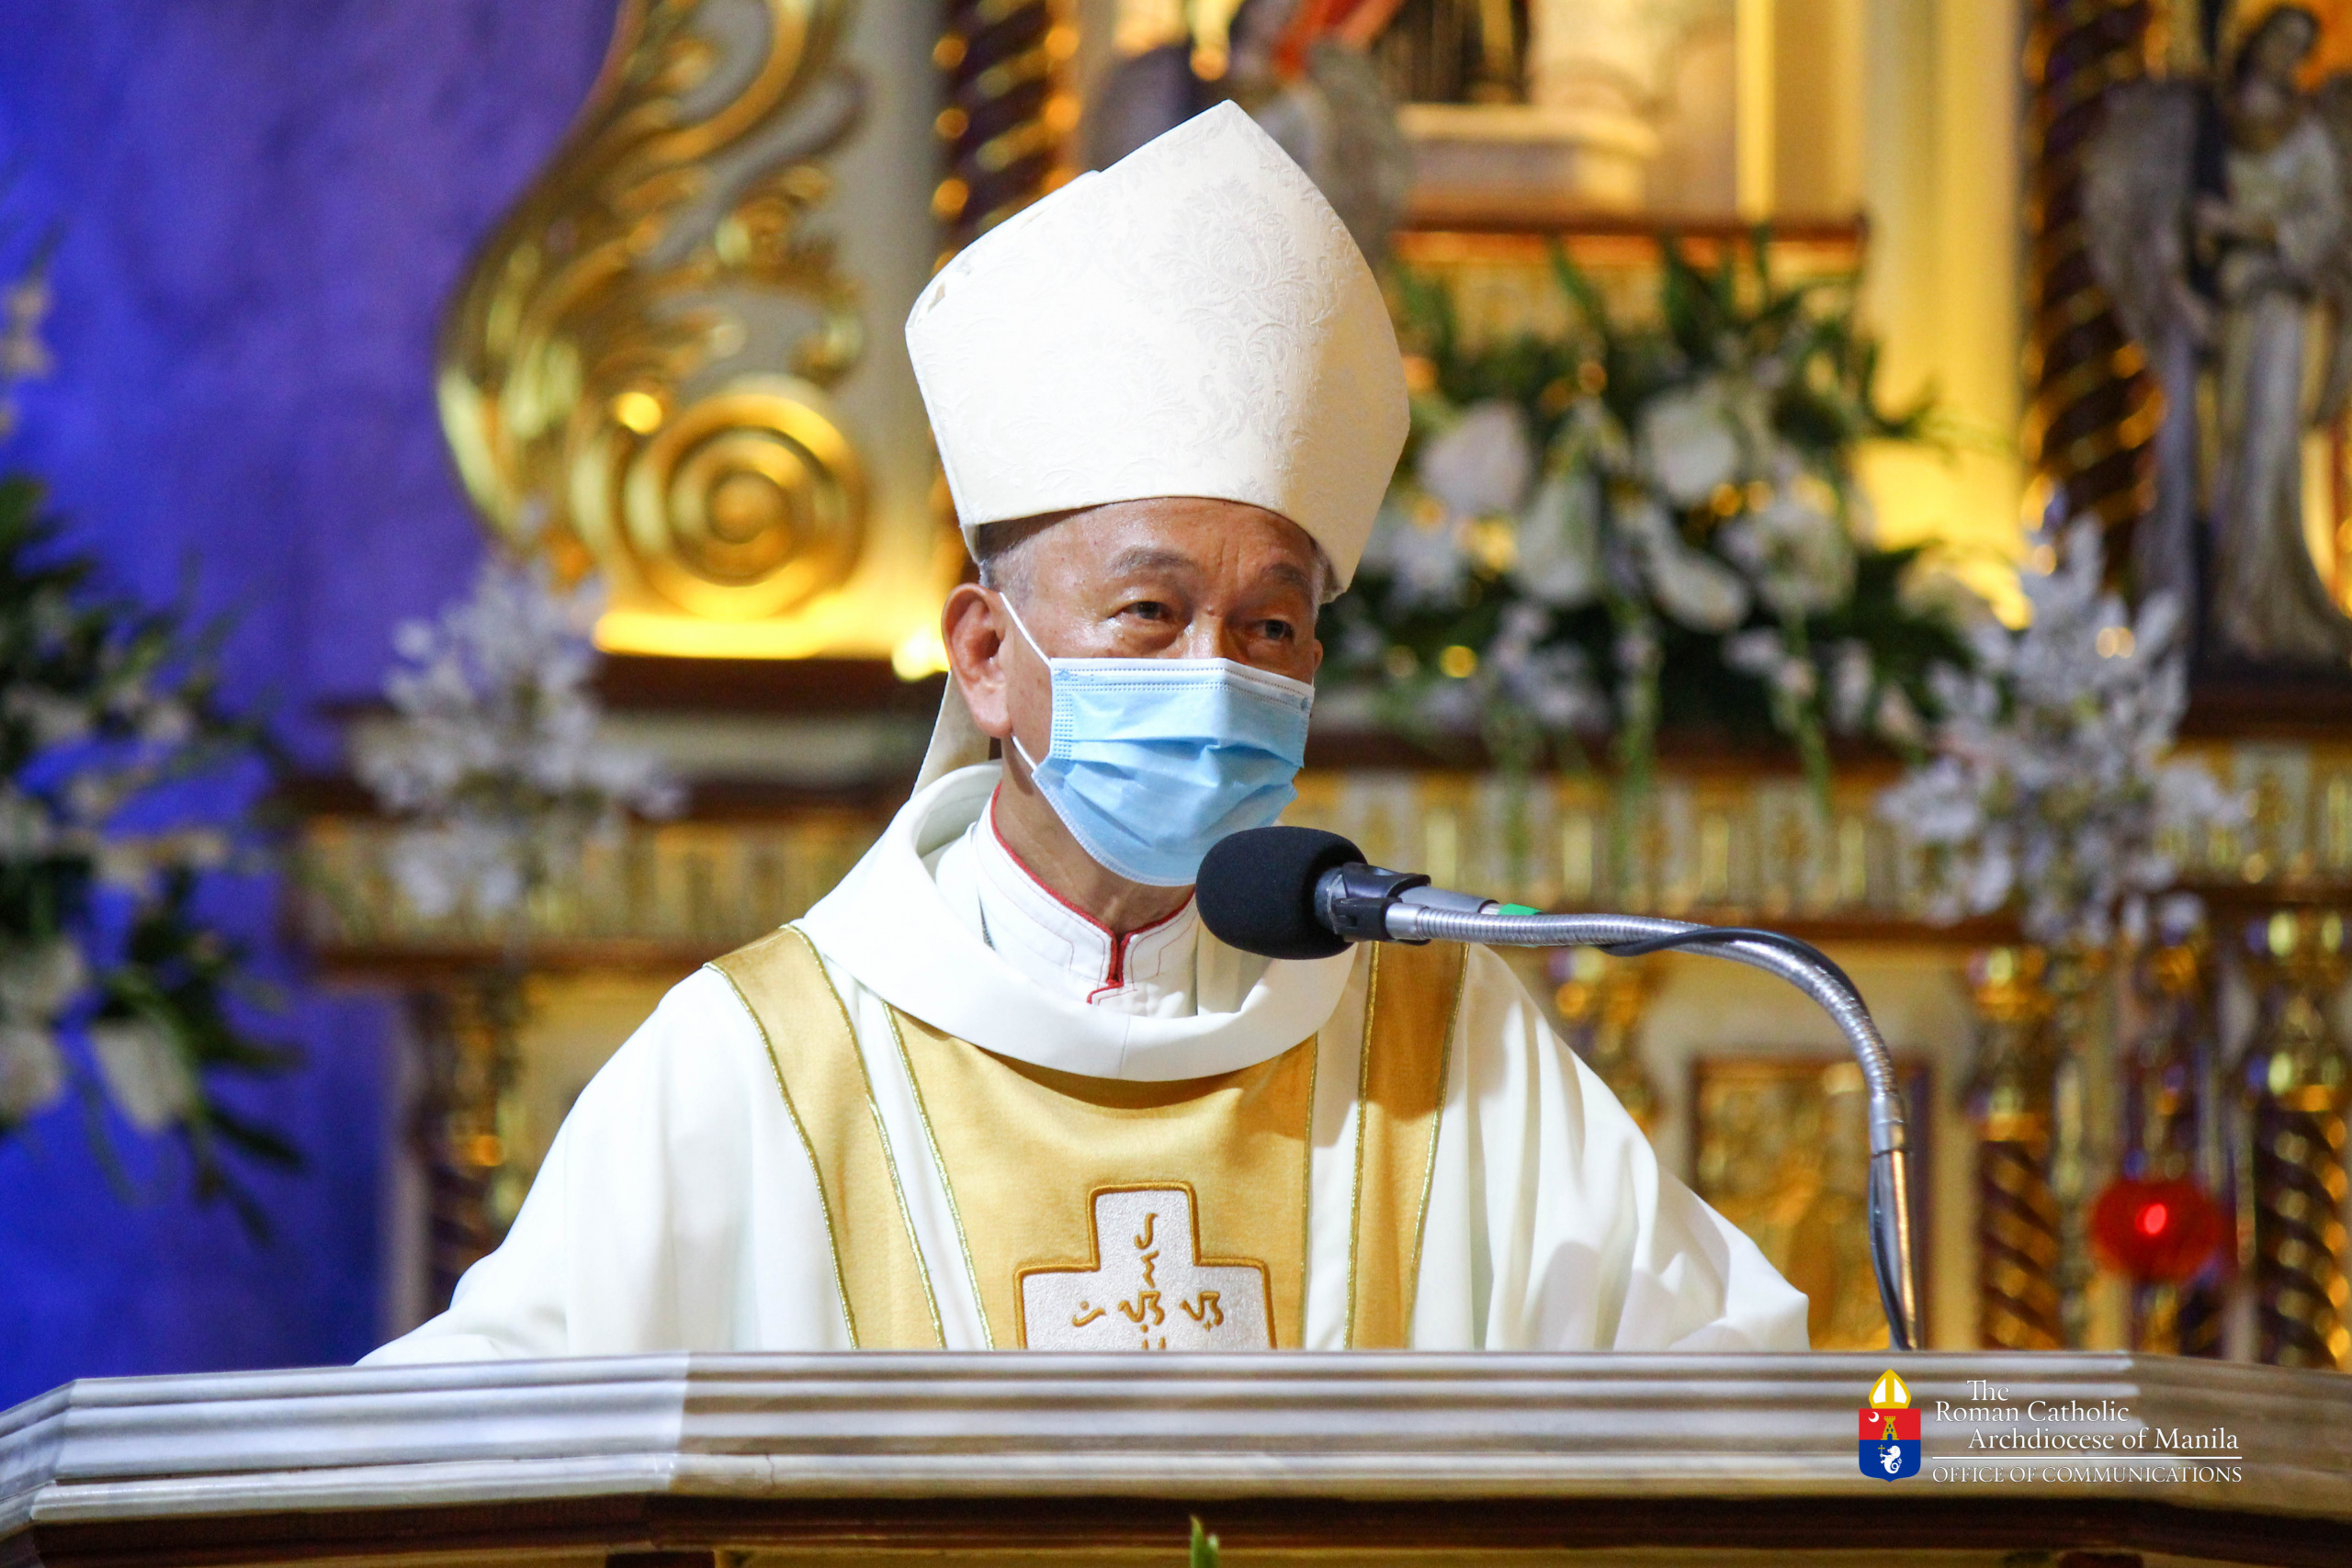 Be influenced by Jesus – not by surveys – in electing leaders, says Bishop Pabillo